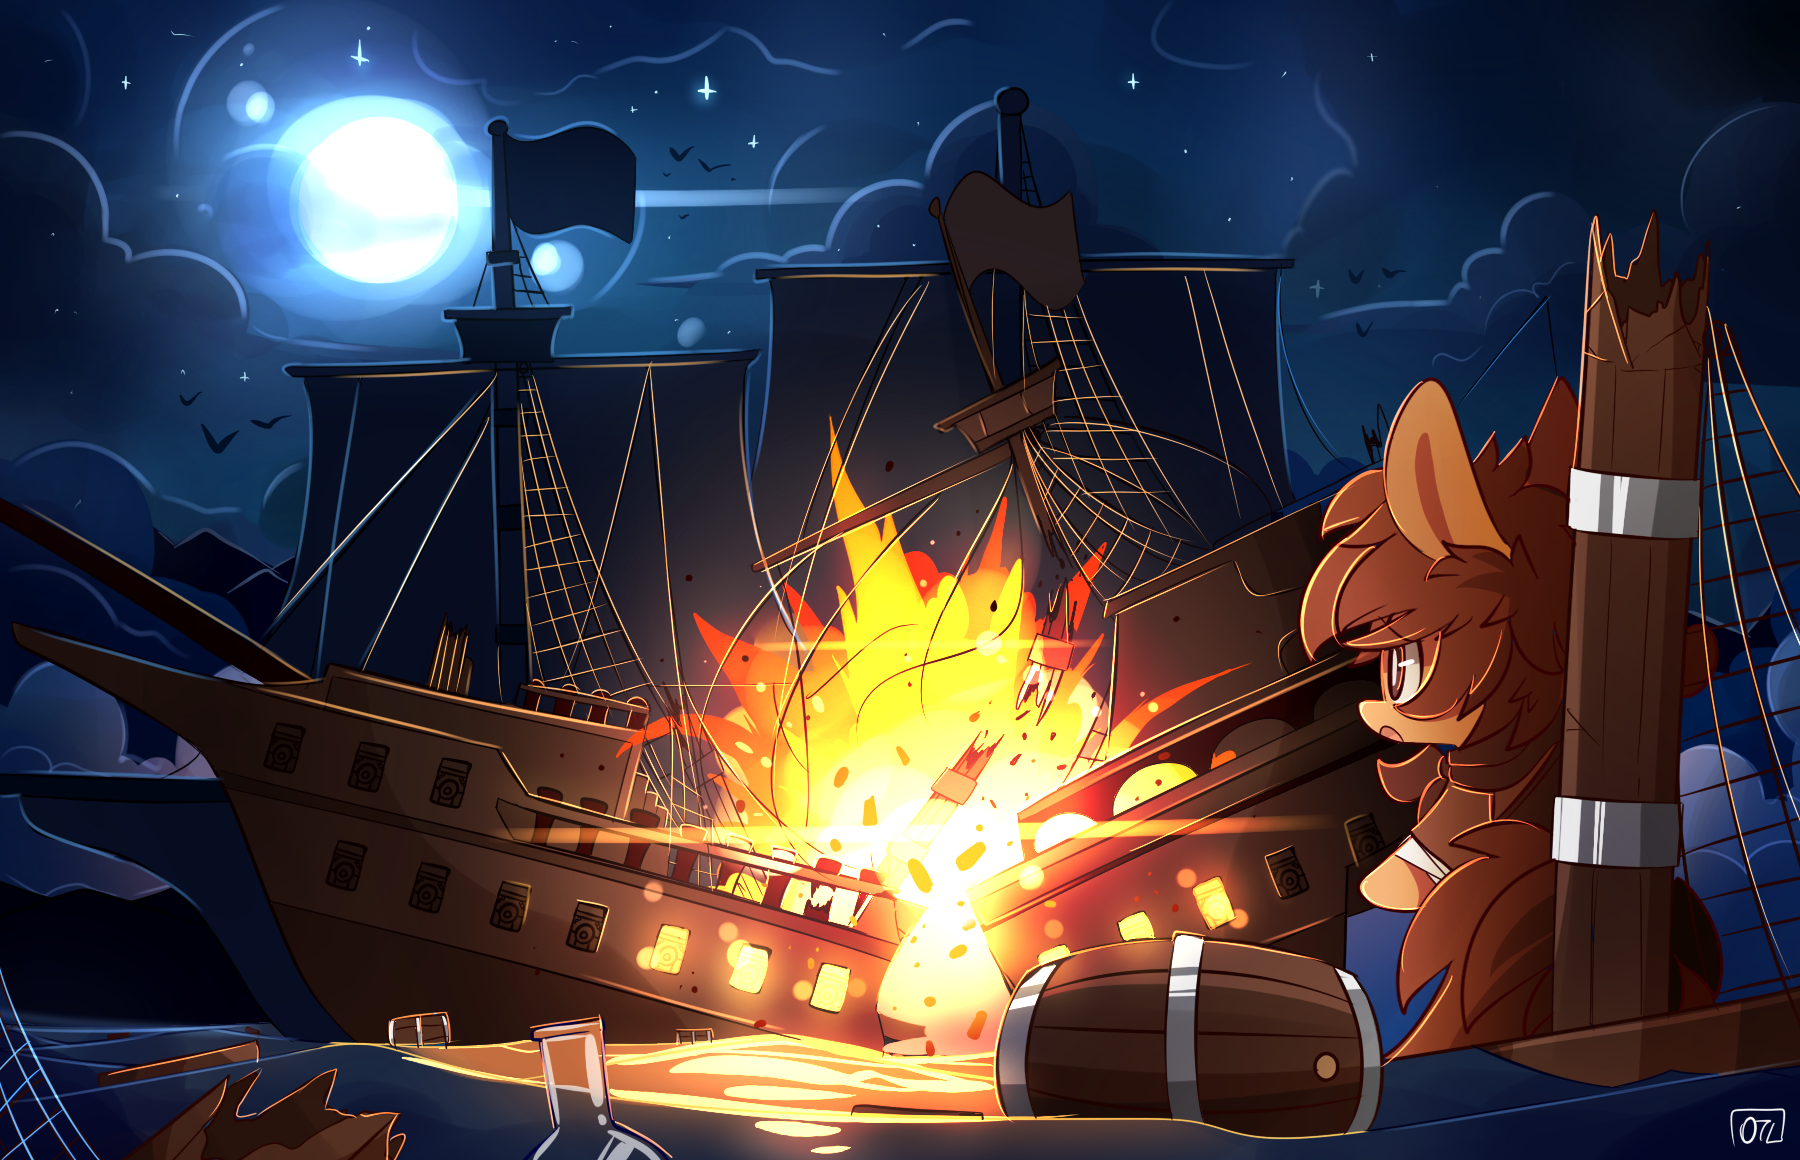 terrible_night_by_ilifeloser-d7gfqbl.png